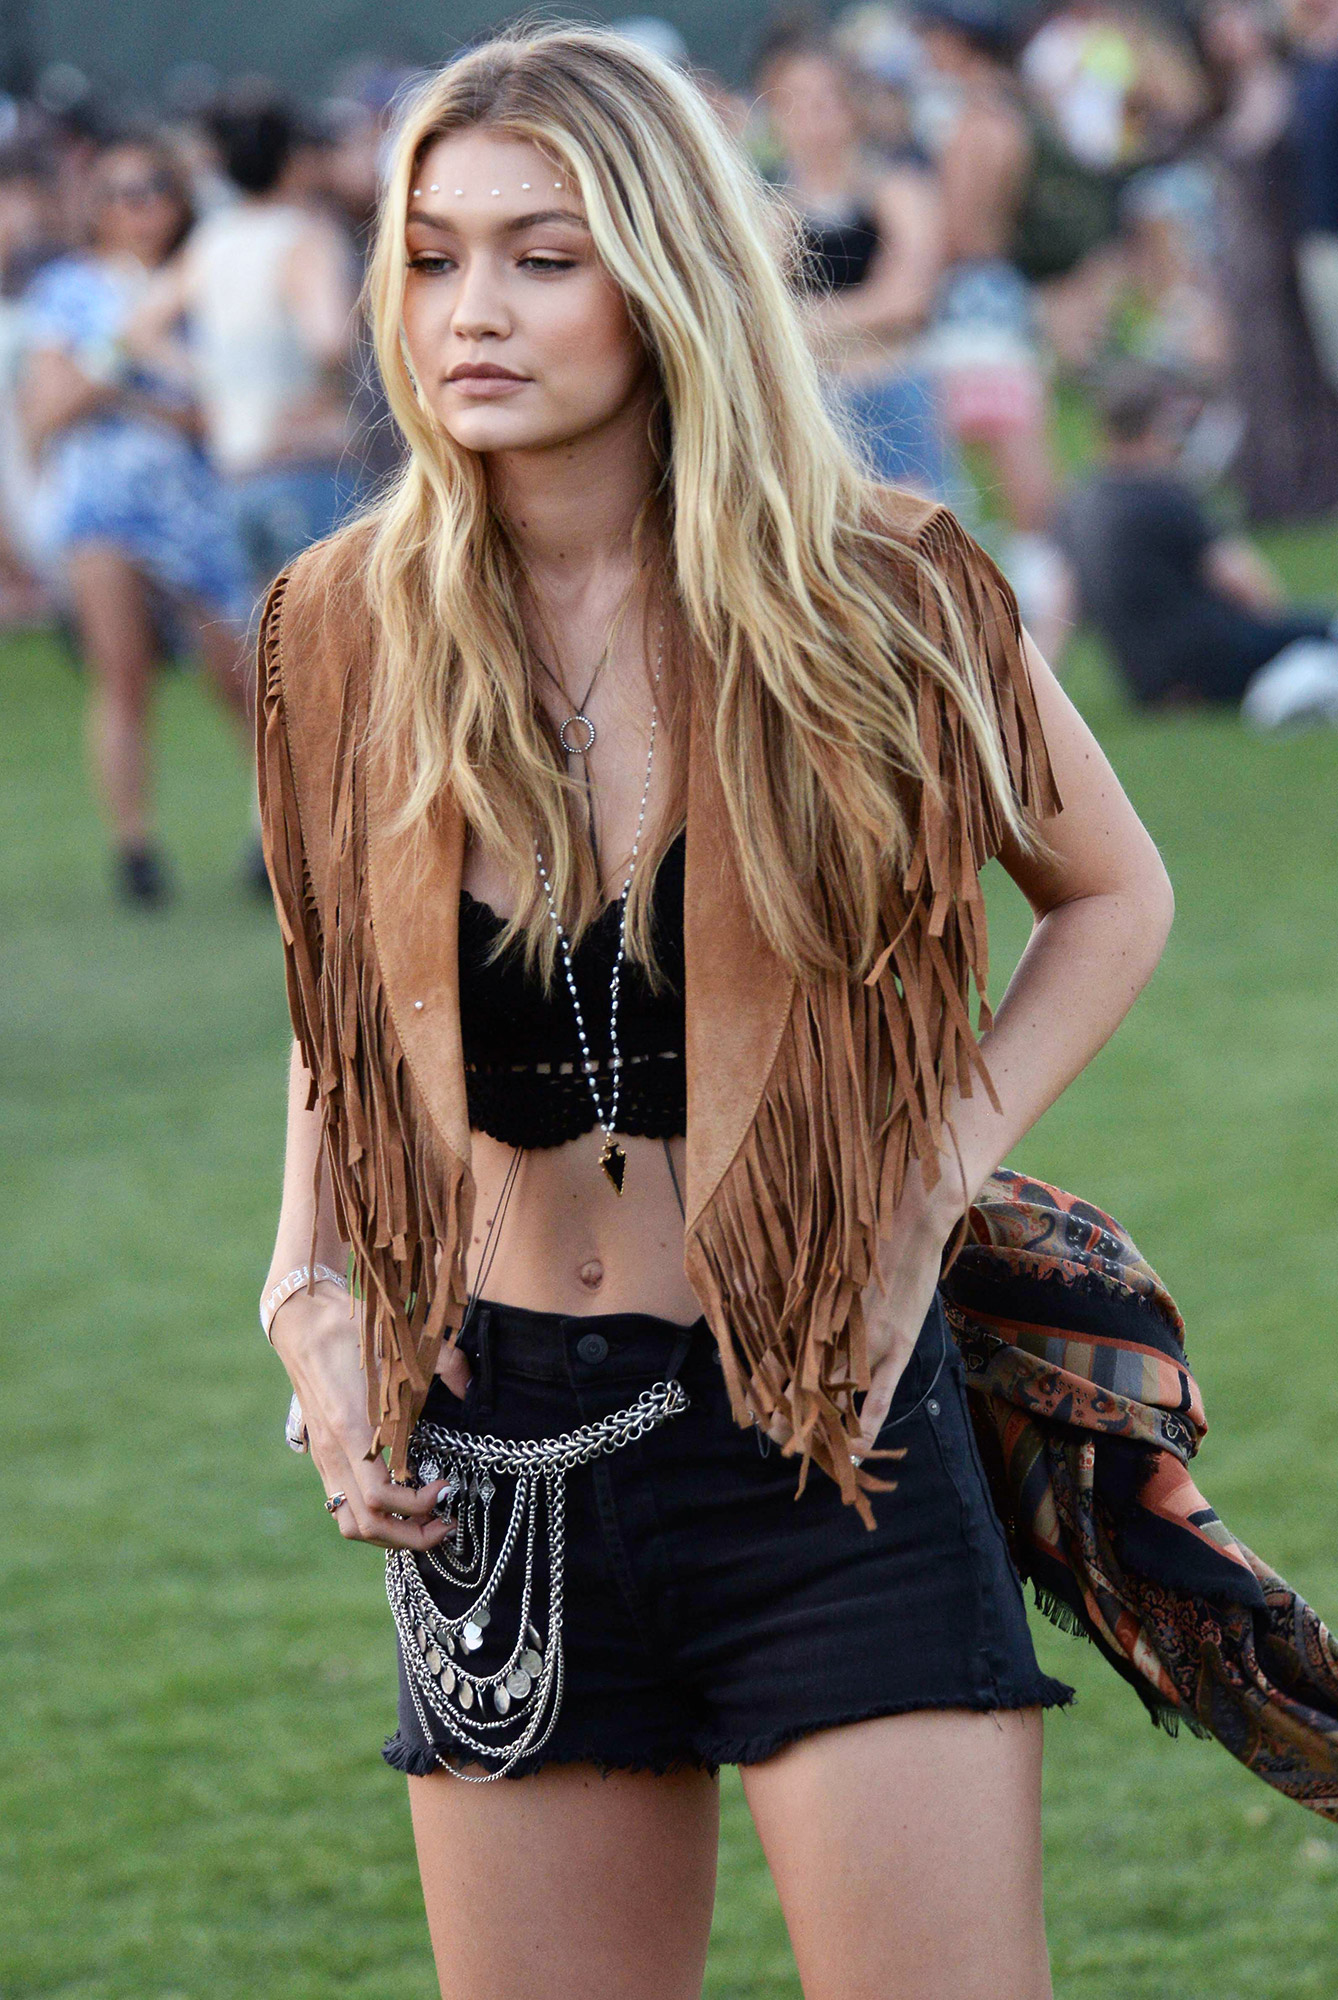 Gigi Hadid  looking very fashionable as she is spotted on Day 2 of the Coachella Music Festival in Indio, Ca